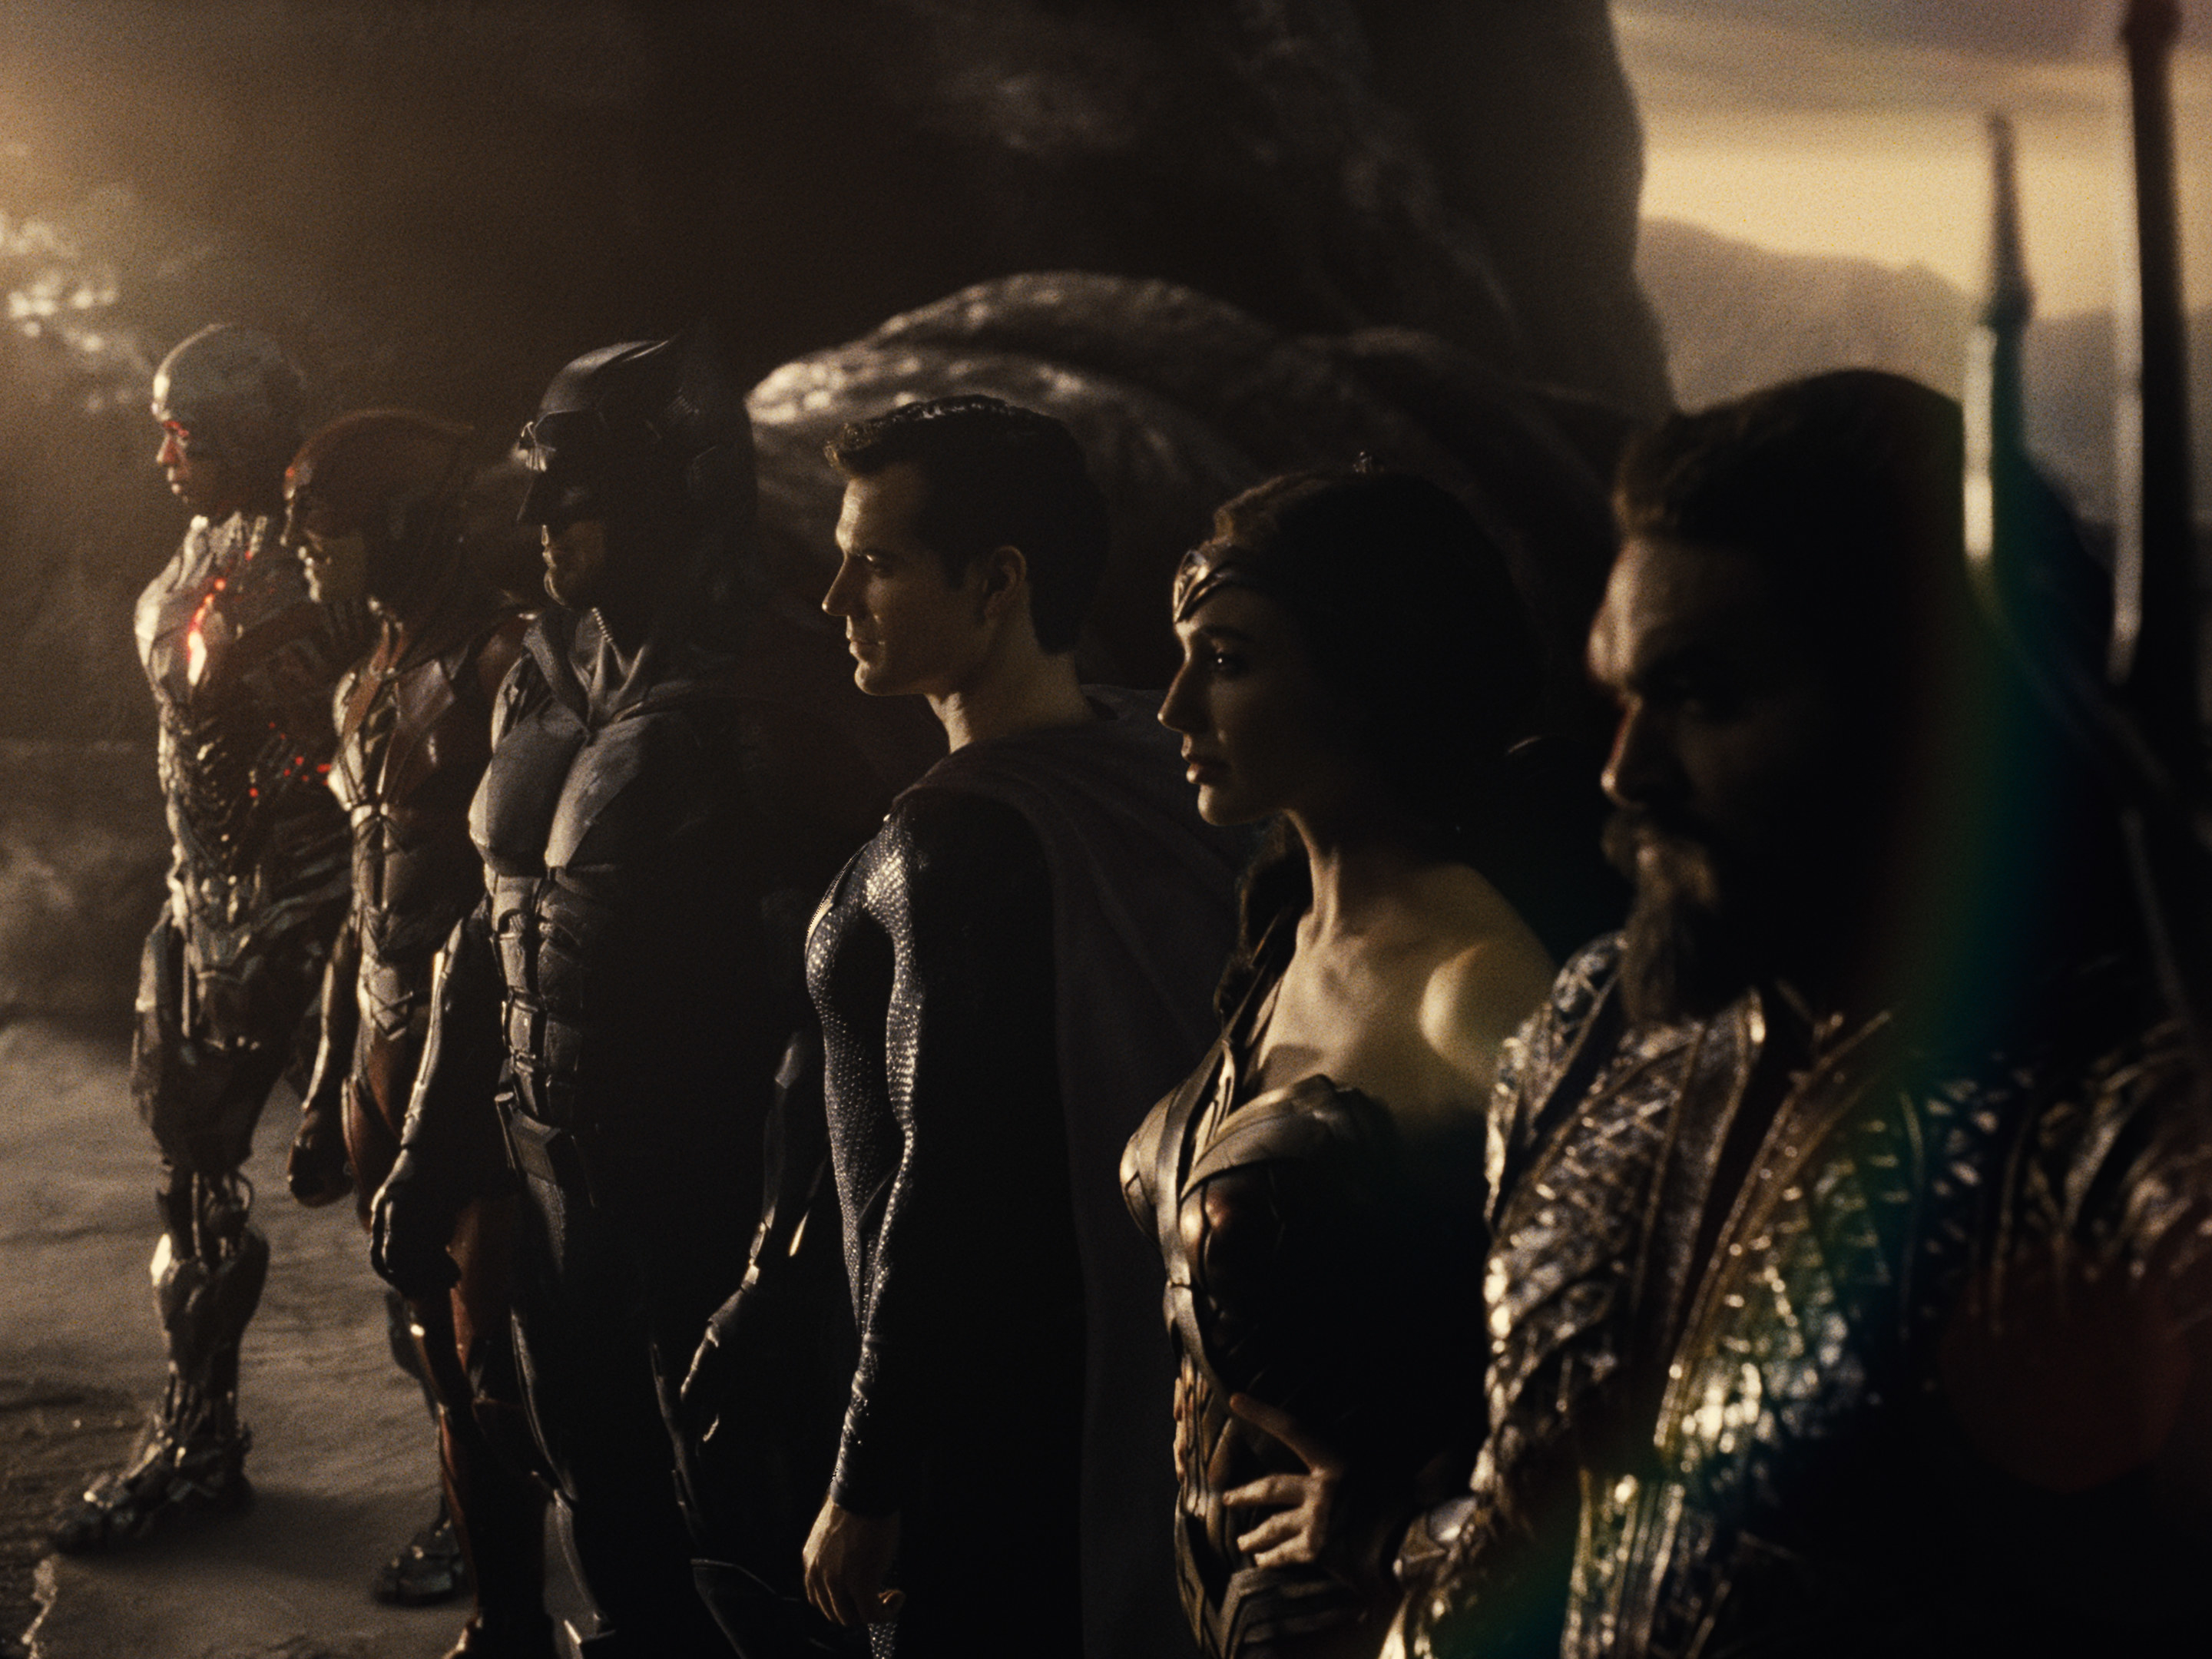 Cyborg, The Flash, Batman, Superman, Wonder Woman, and Aquaman lined up and ready to face off